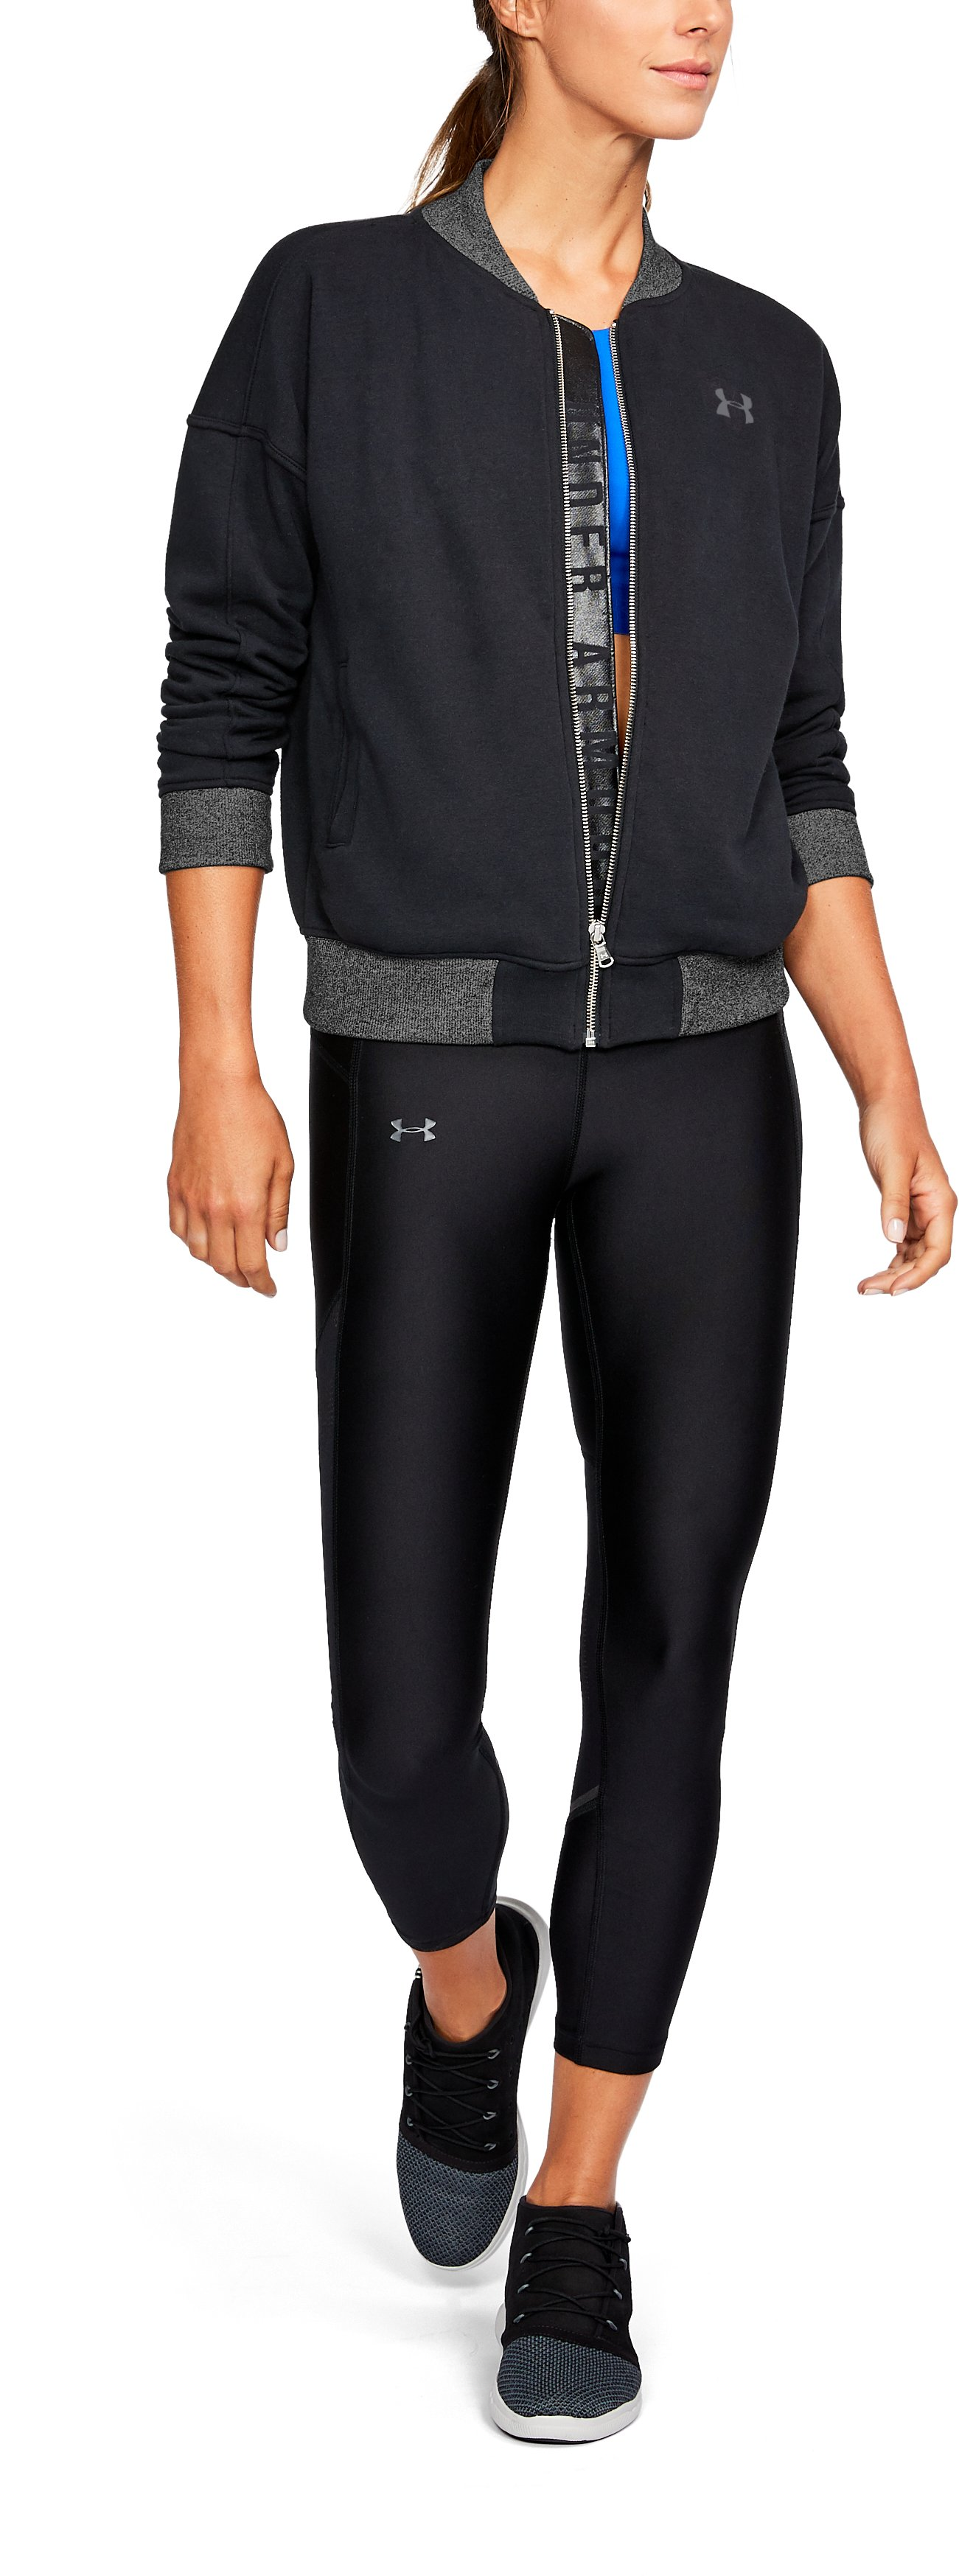 Women's UA x Project Rock  Threadborne Fleece Bomber Jacket *Ships 11/16/17*, Black , undefined